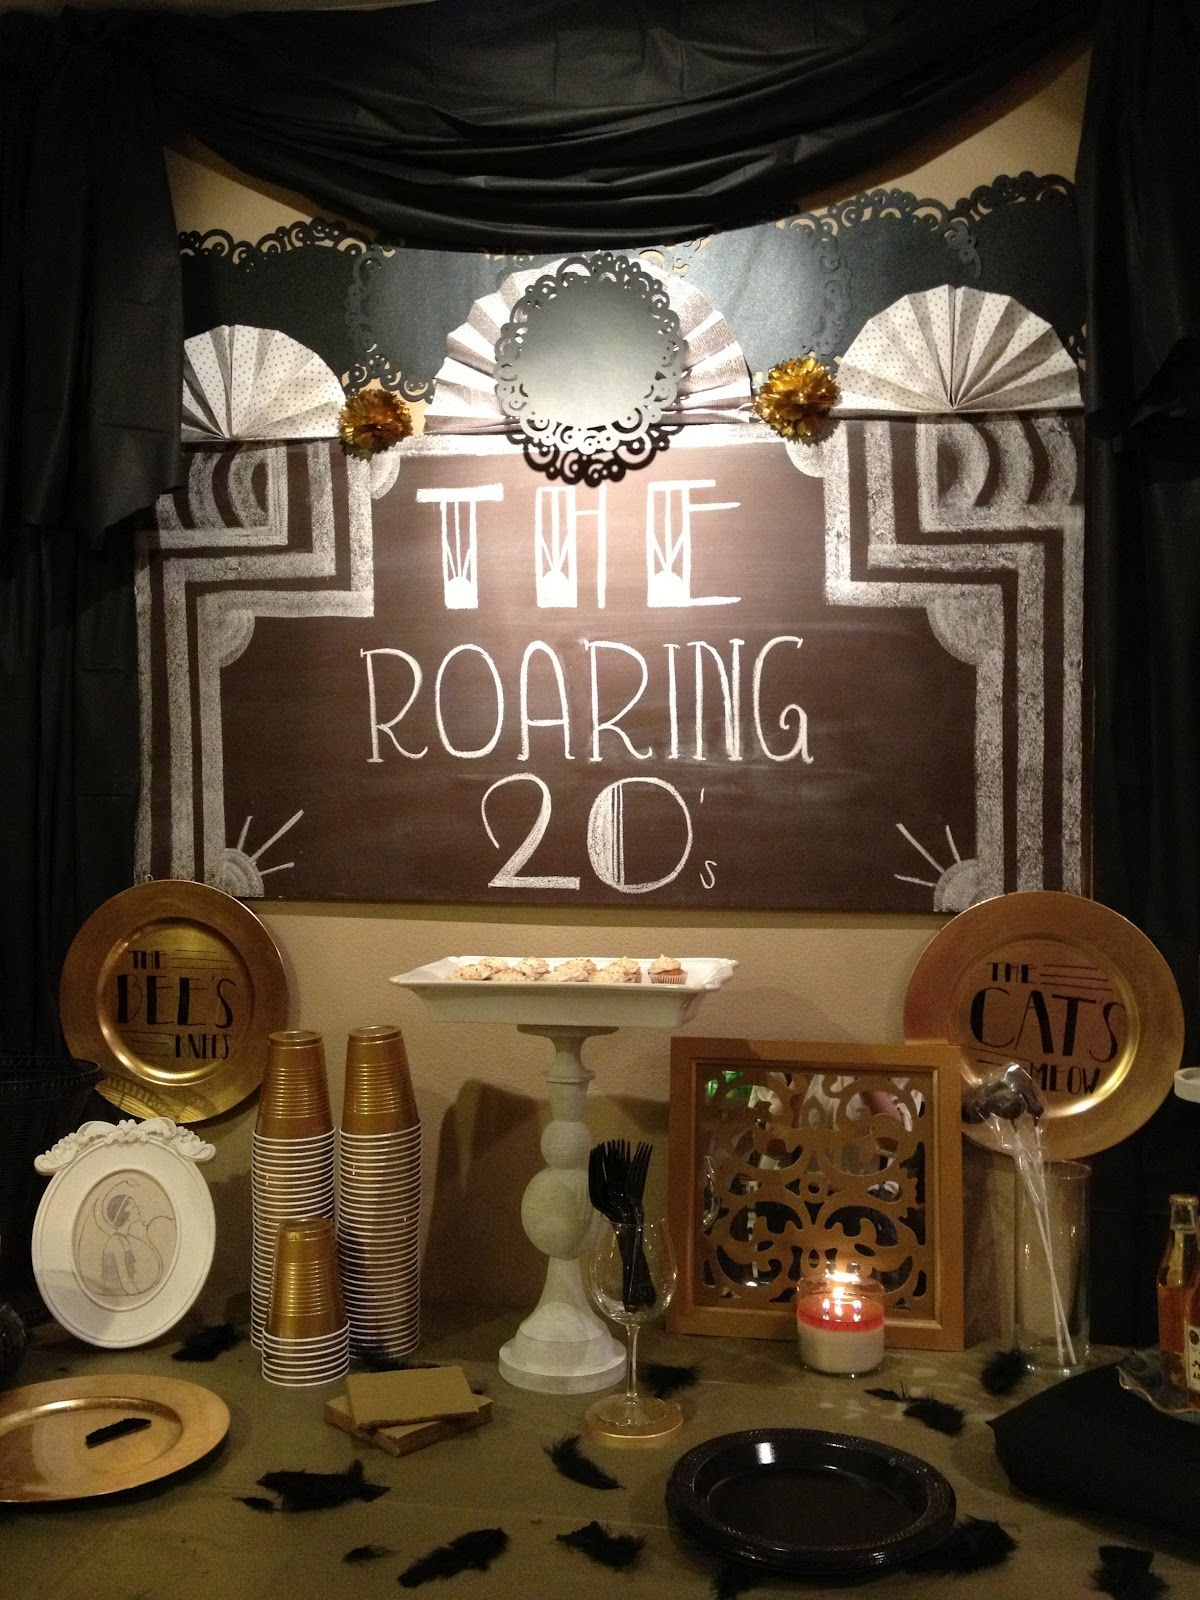 Art deco backdrop for photos wall decor party decoration 1920 s - Roaring 20 S Party Ideas From The 99 Cent Store But